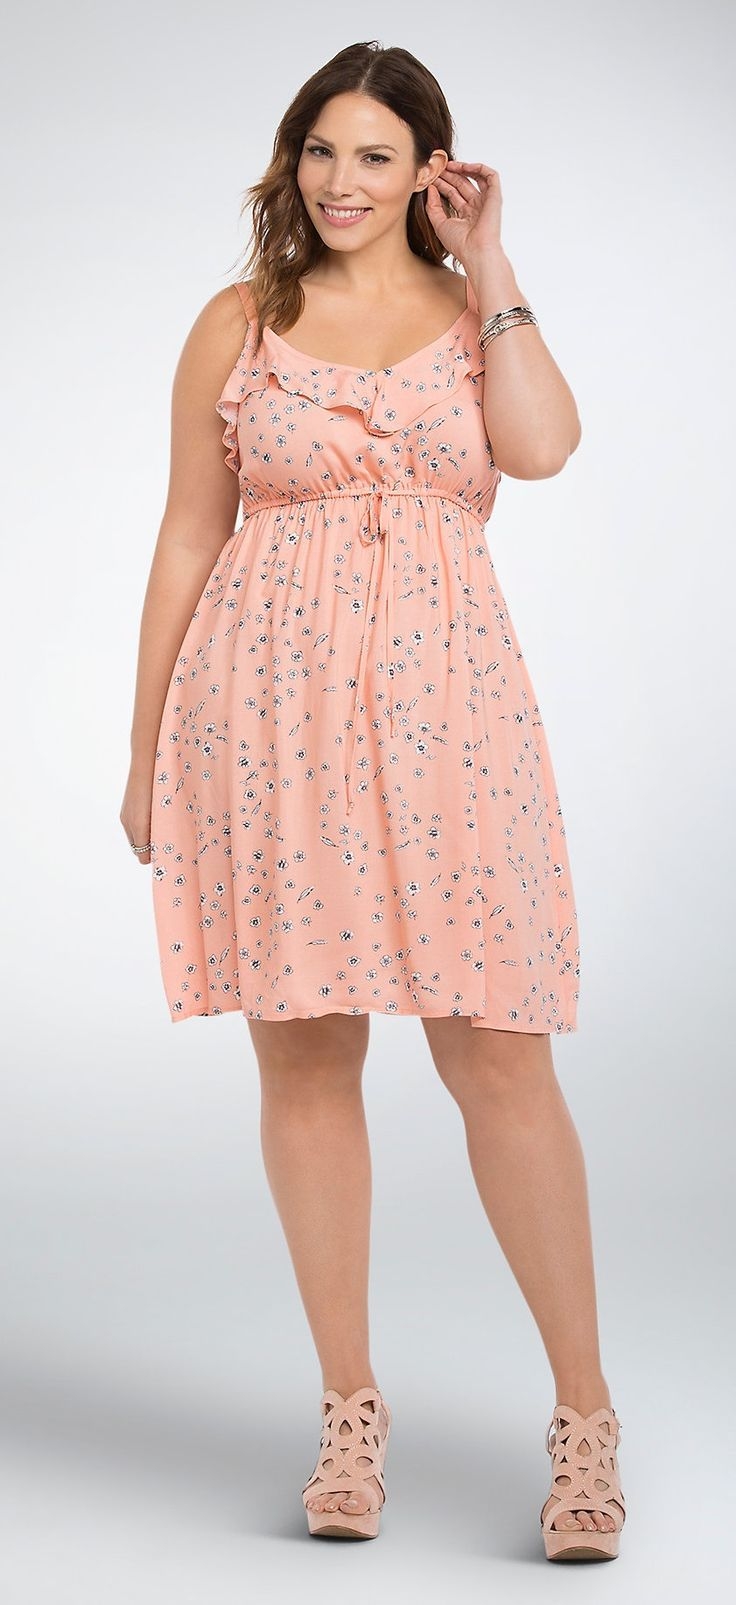 Peach colored dresses for plus sizes